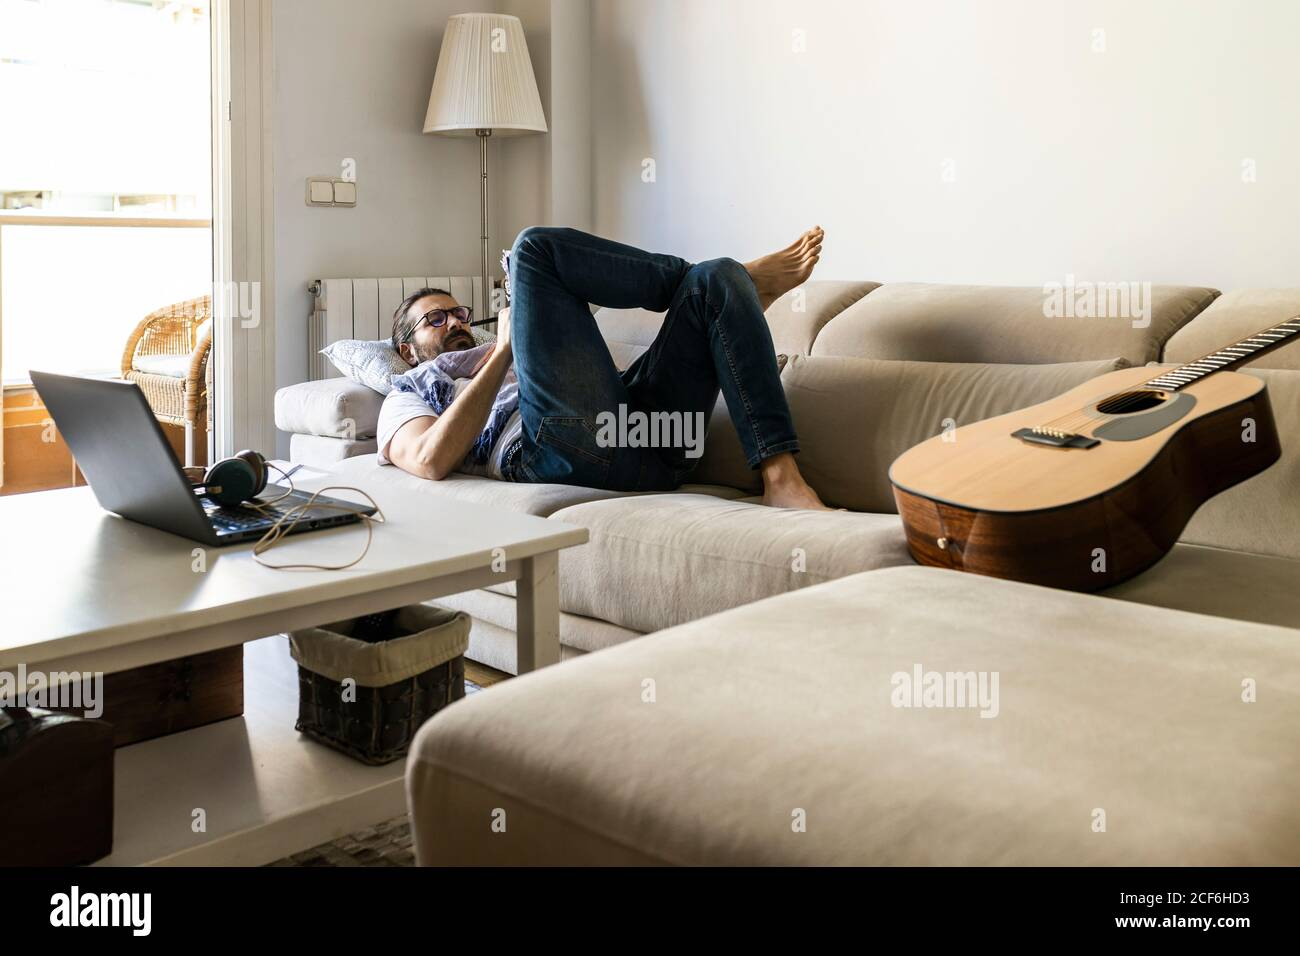 Man writing notes on couch in cozy living room Stock Photo